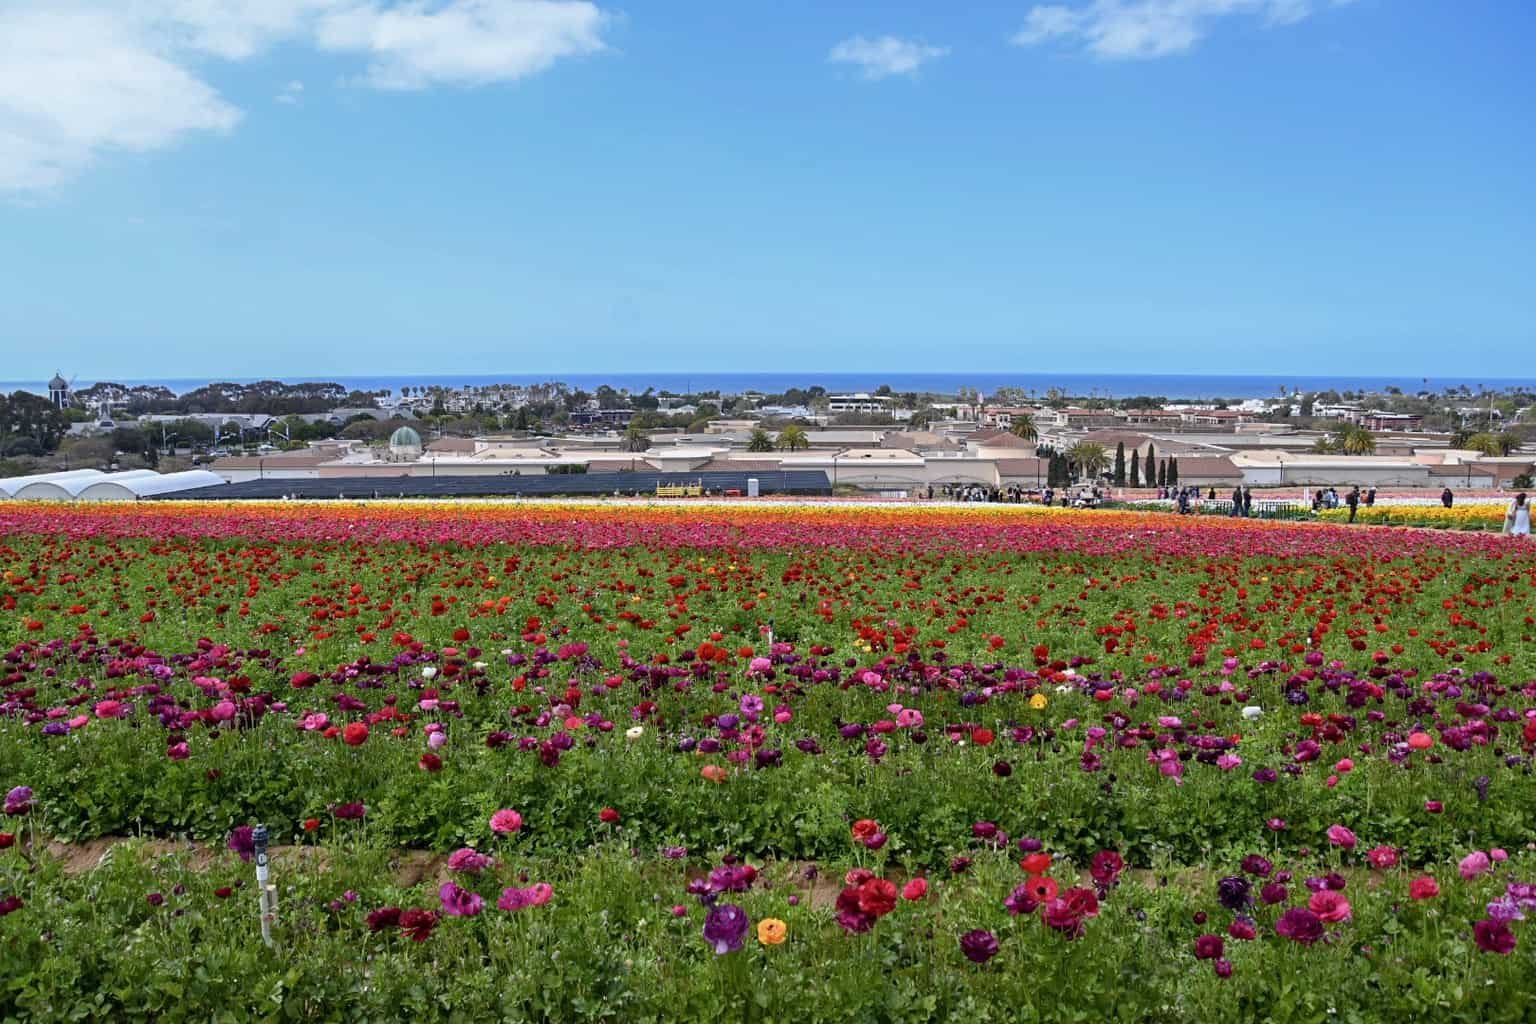 A Day at The Flower Fields in Carlsbad, California- A Photo Essay